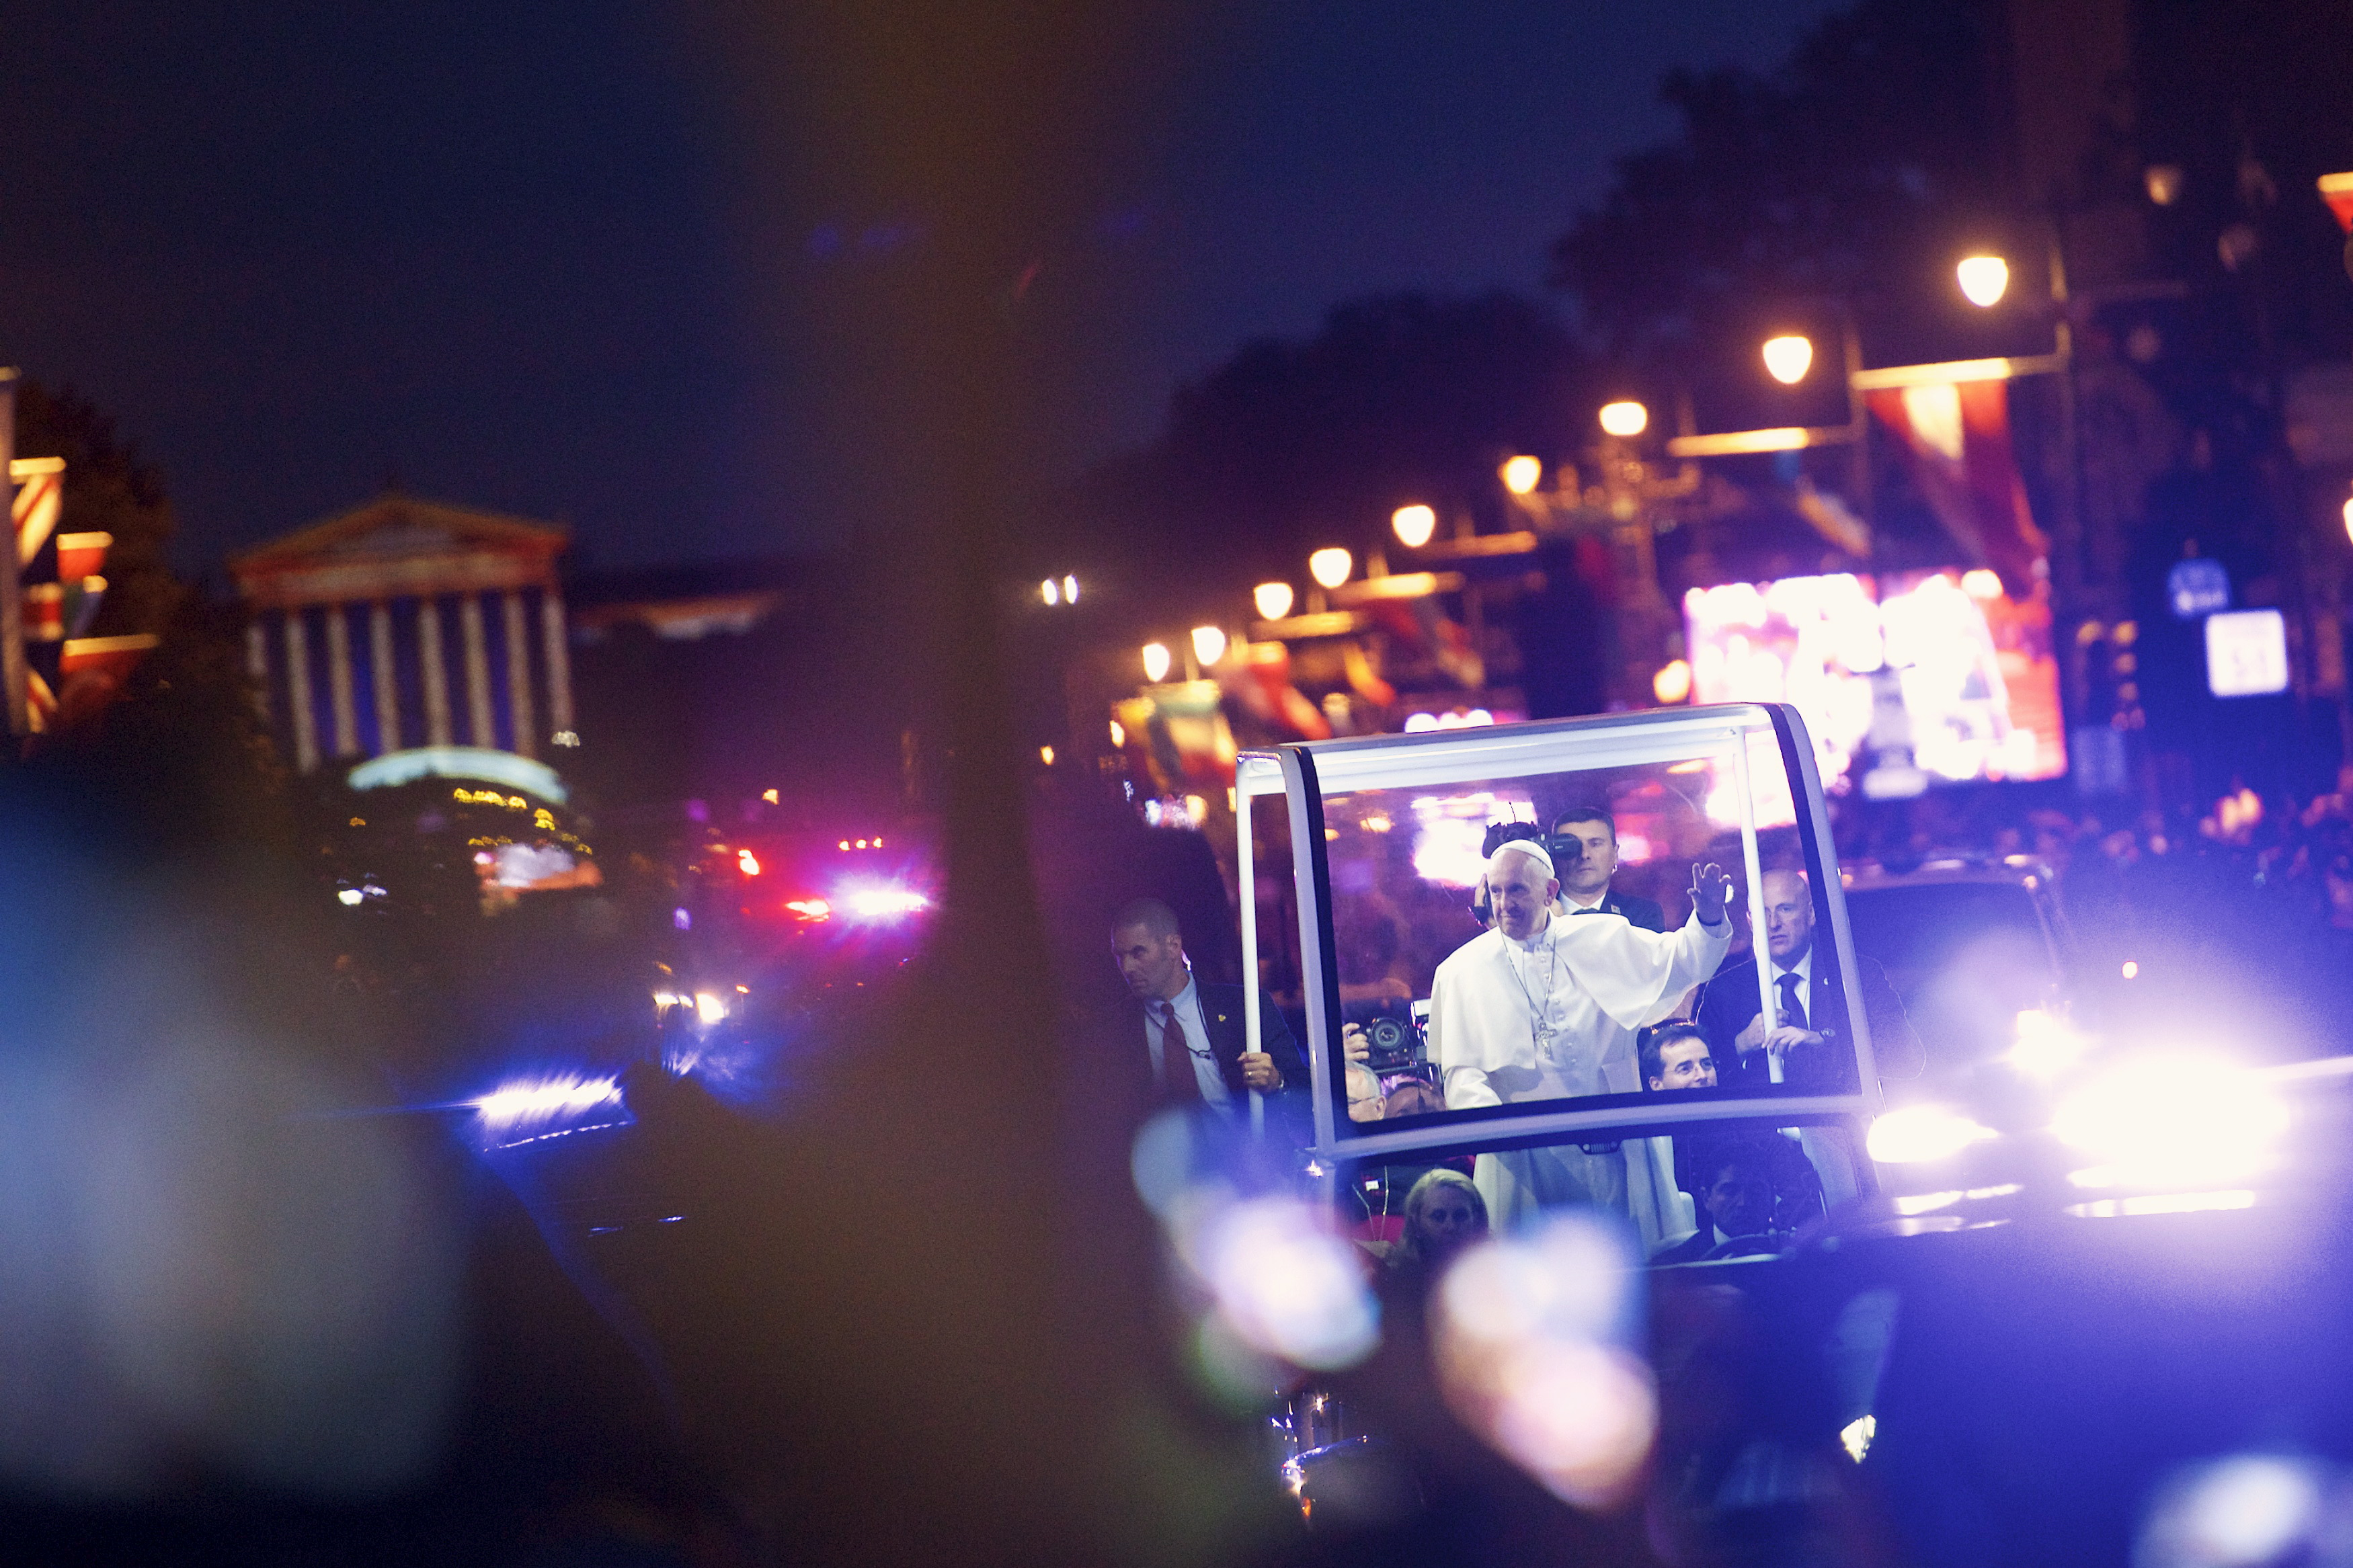 Pope Francis waves to the crowd on the Benjamin Franklin Parkway before the Festival of Families evening program in Philadelphia, Pennsylvania, September 26, 2015. Pope Francis, speaking in America's birthplace on Saturday, offered stout words of support to Hispanic and other immigrants in the United States, telling them not to be discouraged at a time when some prominent politicians are directing hostility toward them. REUTERS/Mark Makela - RTX1SNIR